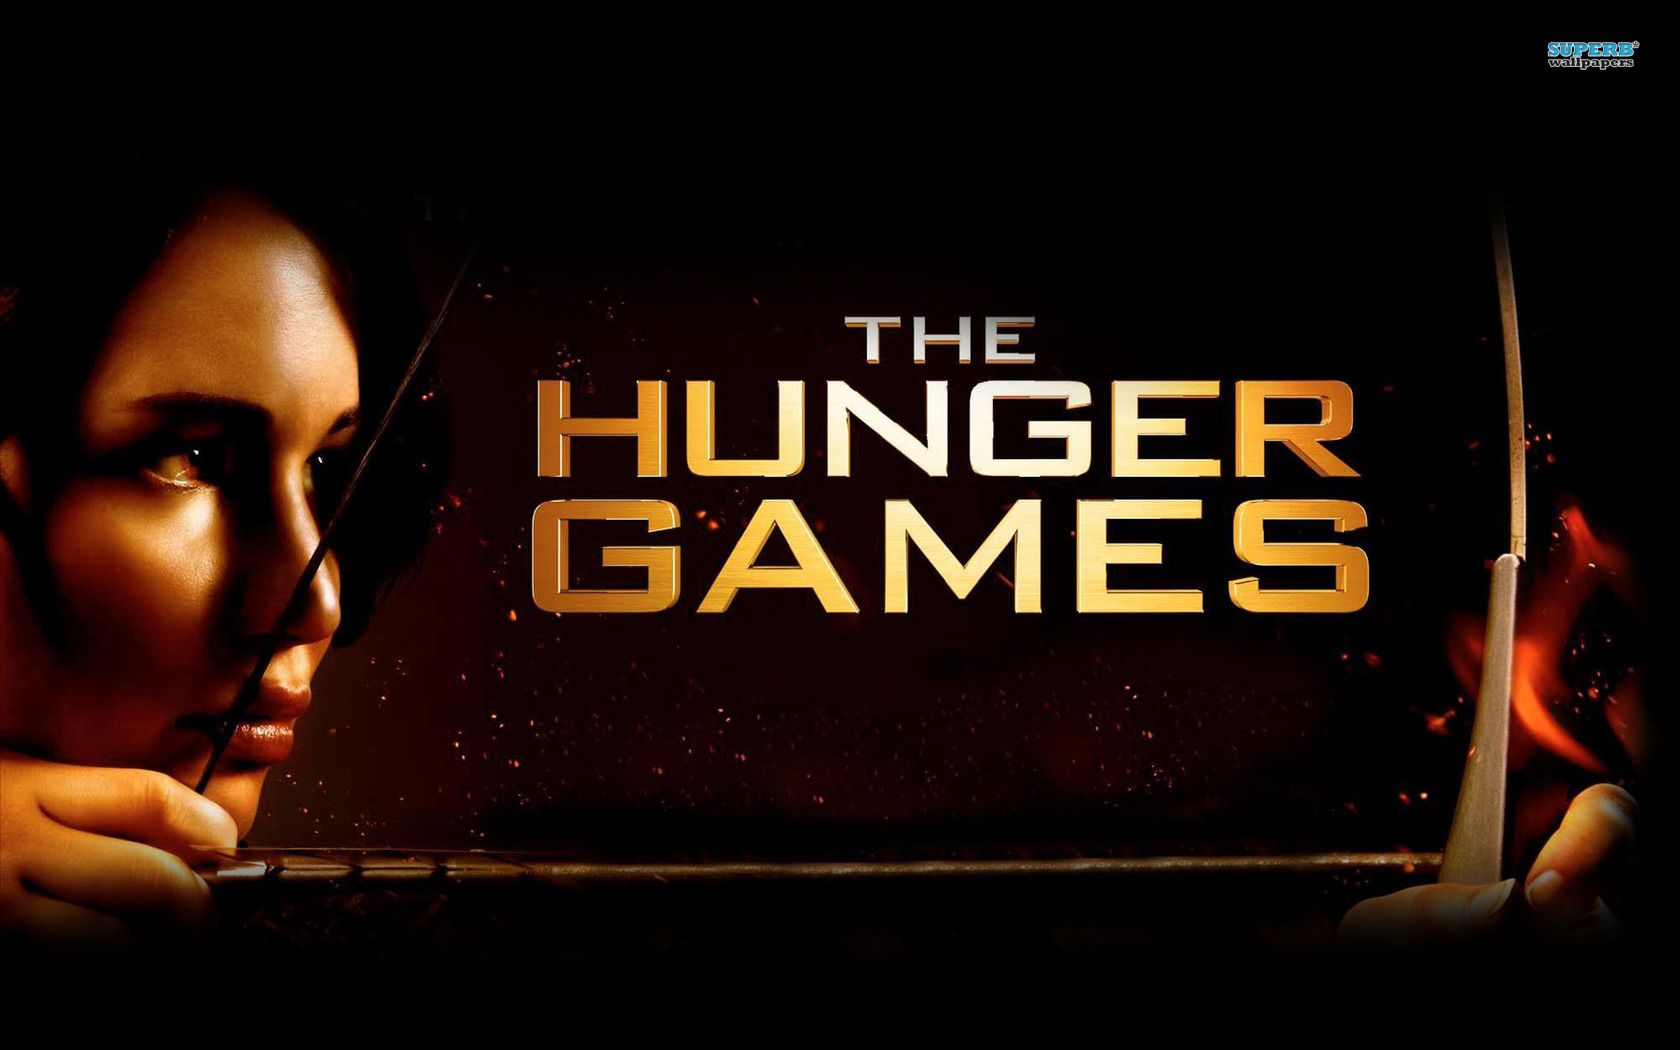 Is The Hunger Games a good book to base an essay on?